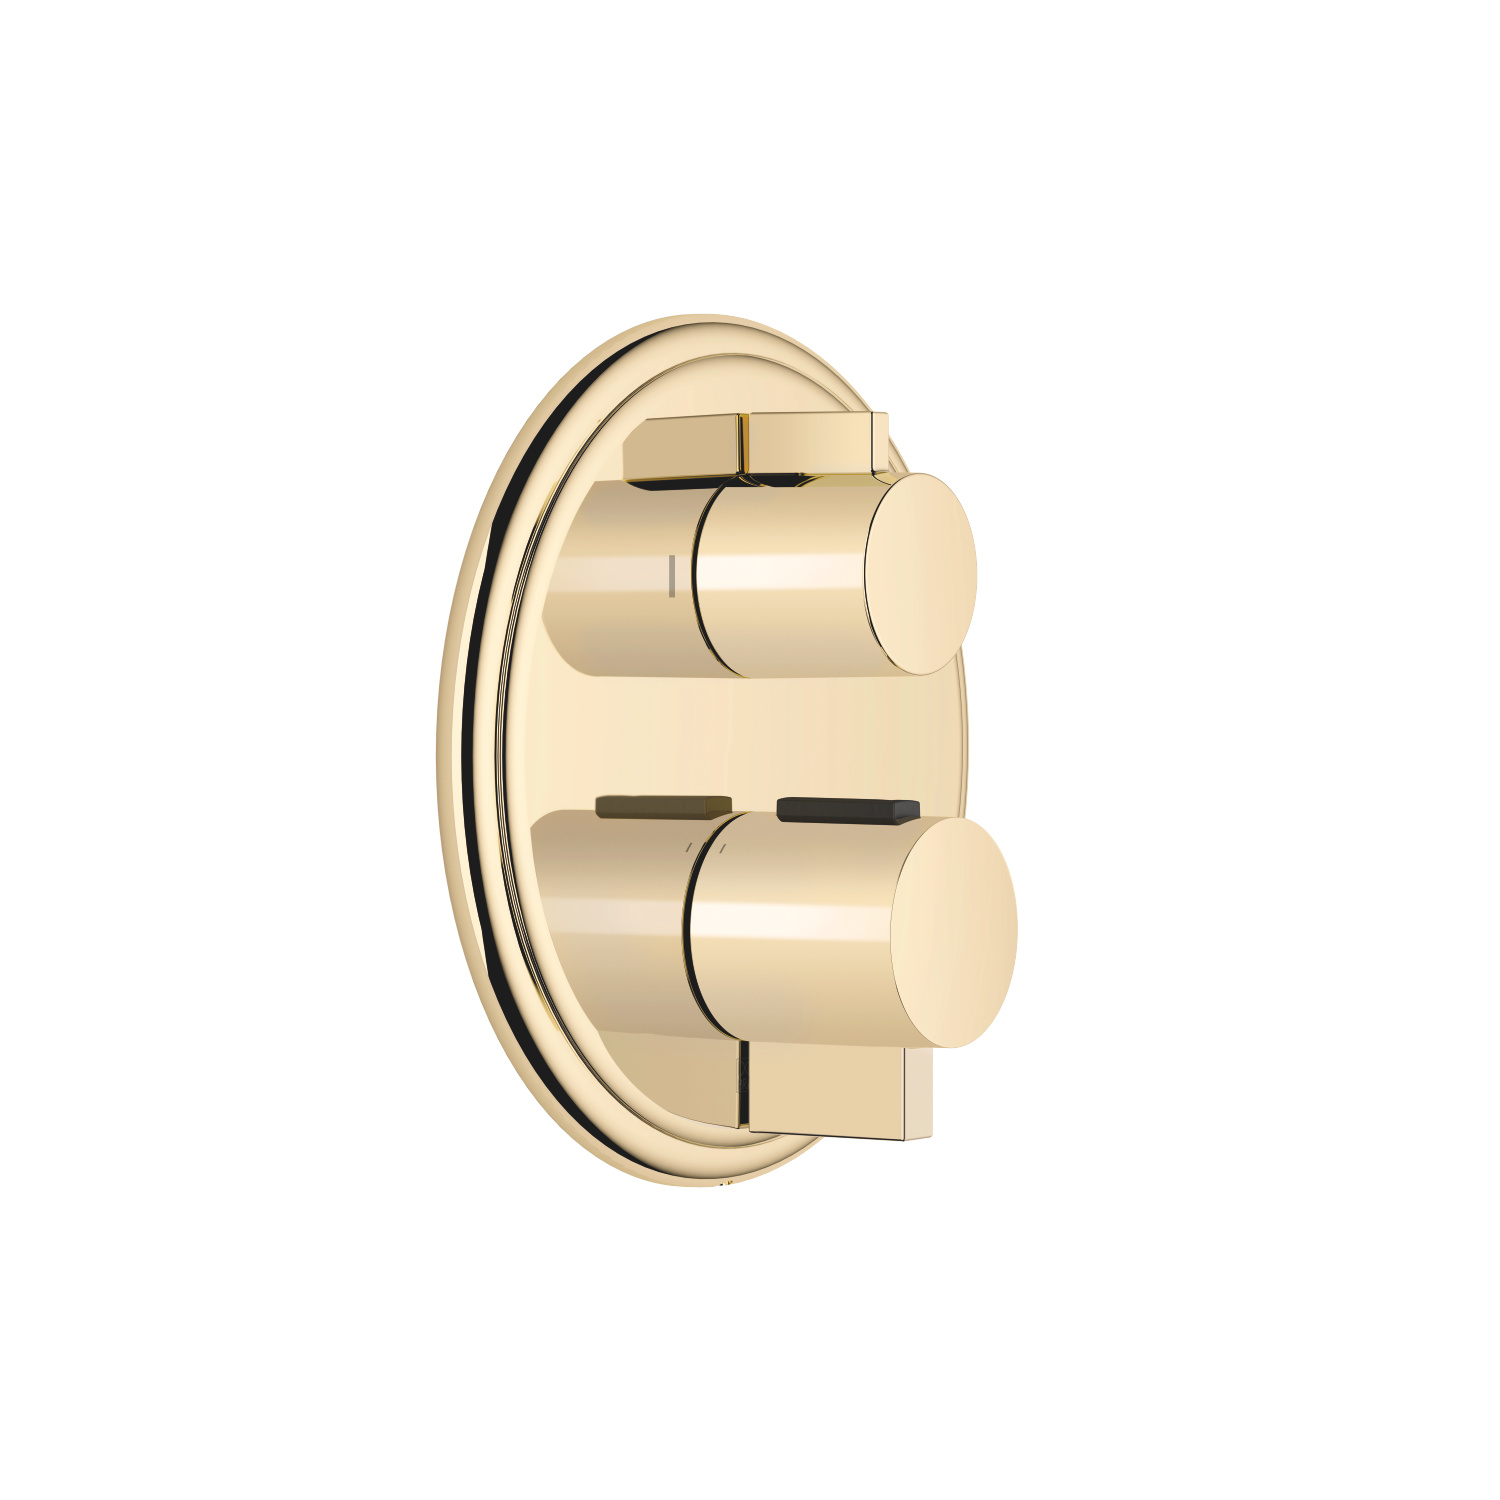 Concealed thermostat with two-way volume control - Durabrass